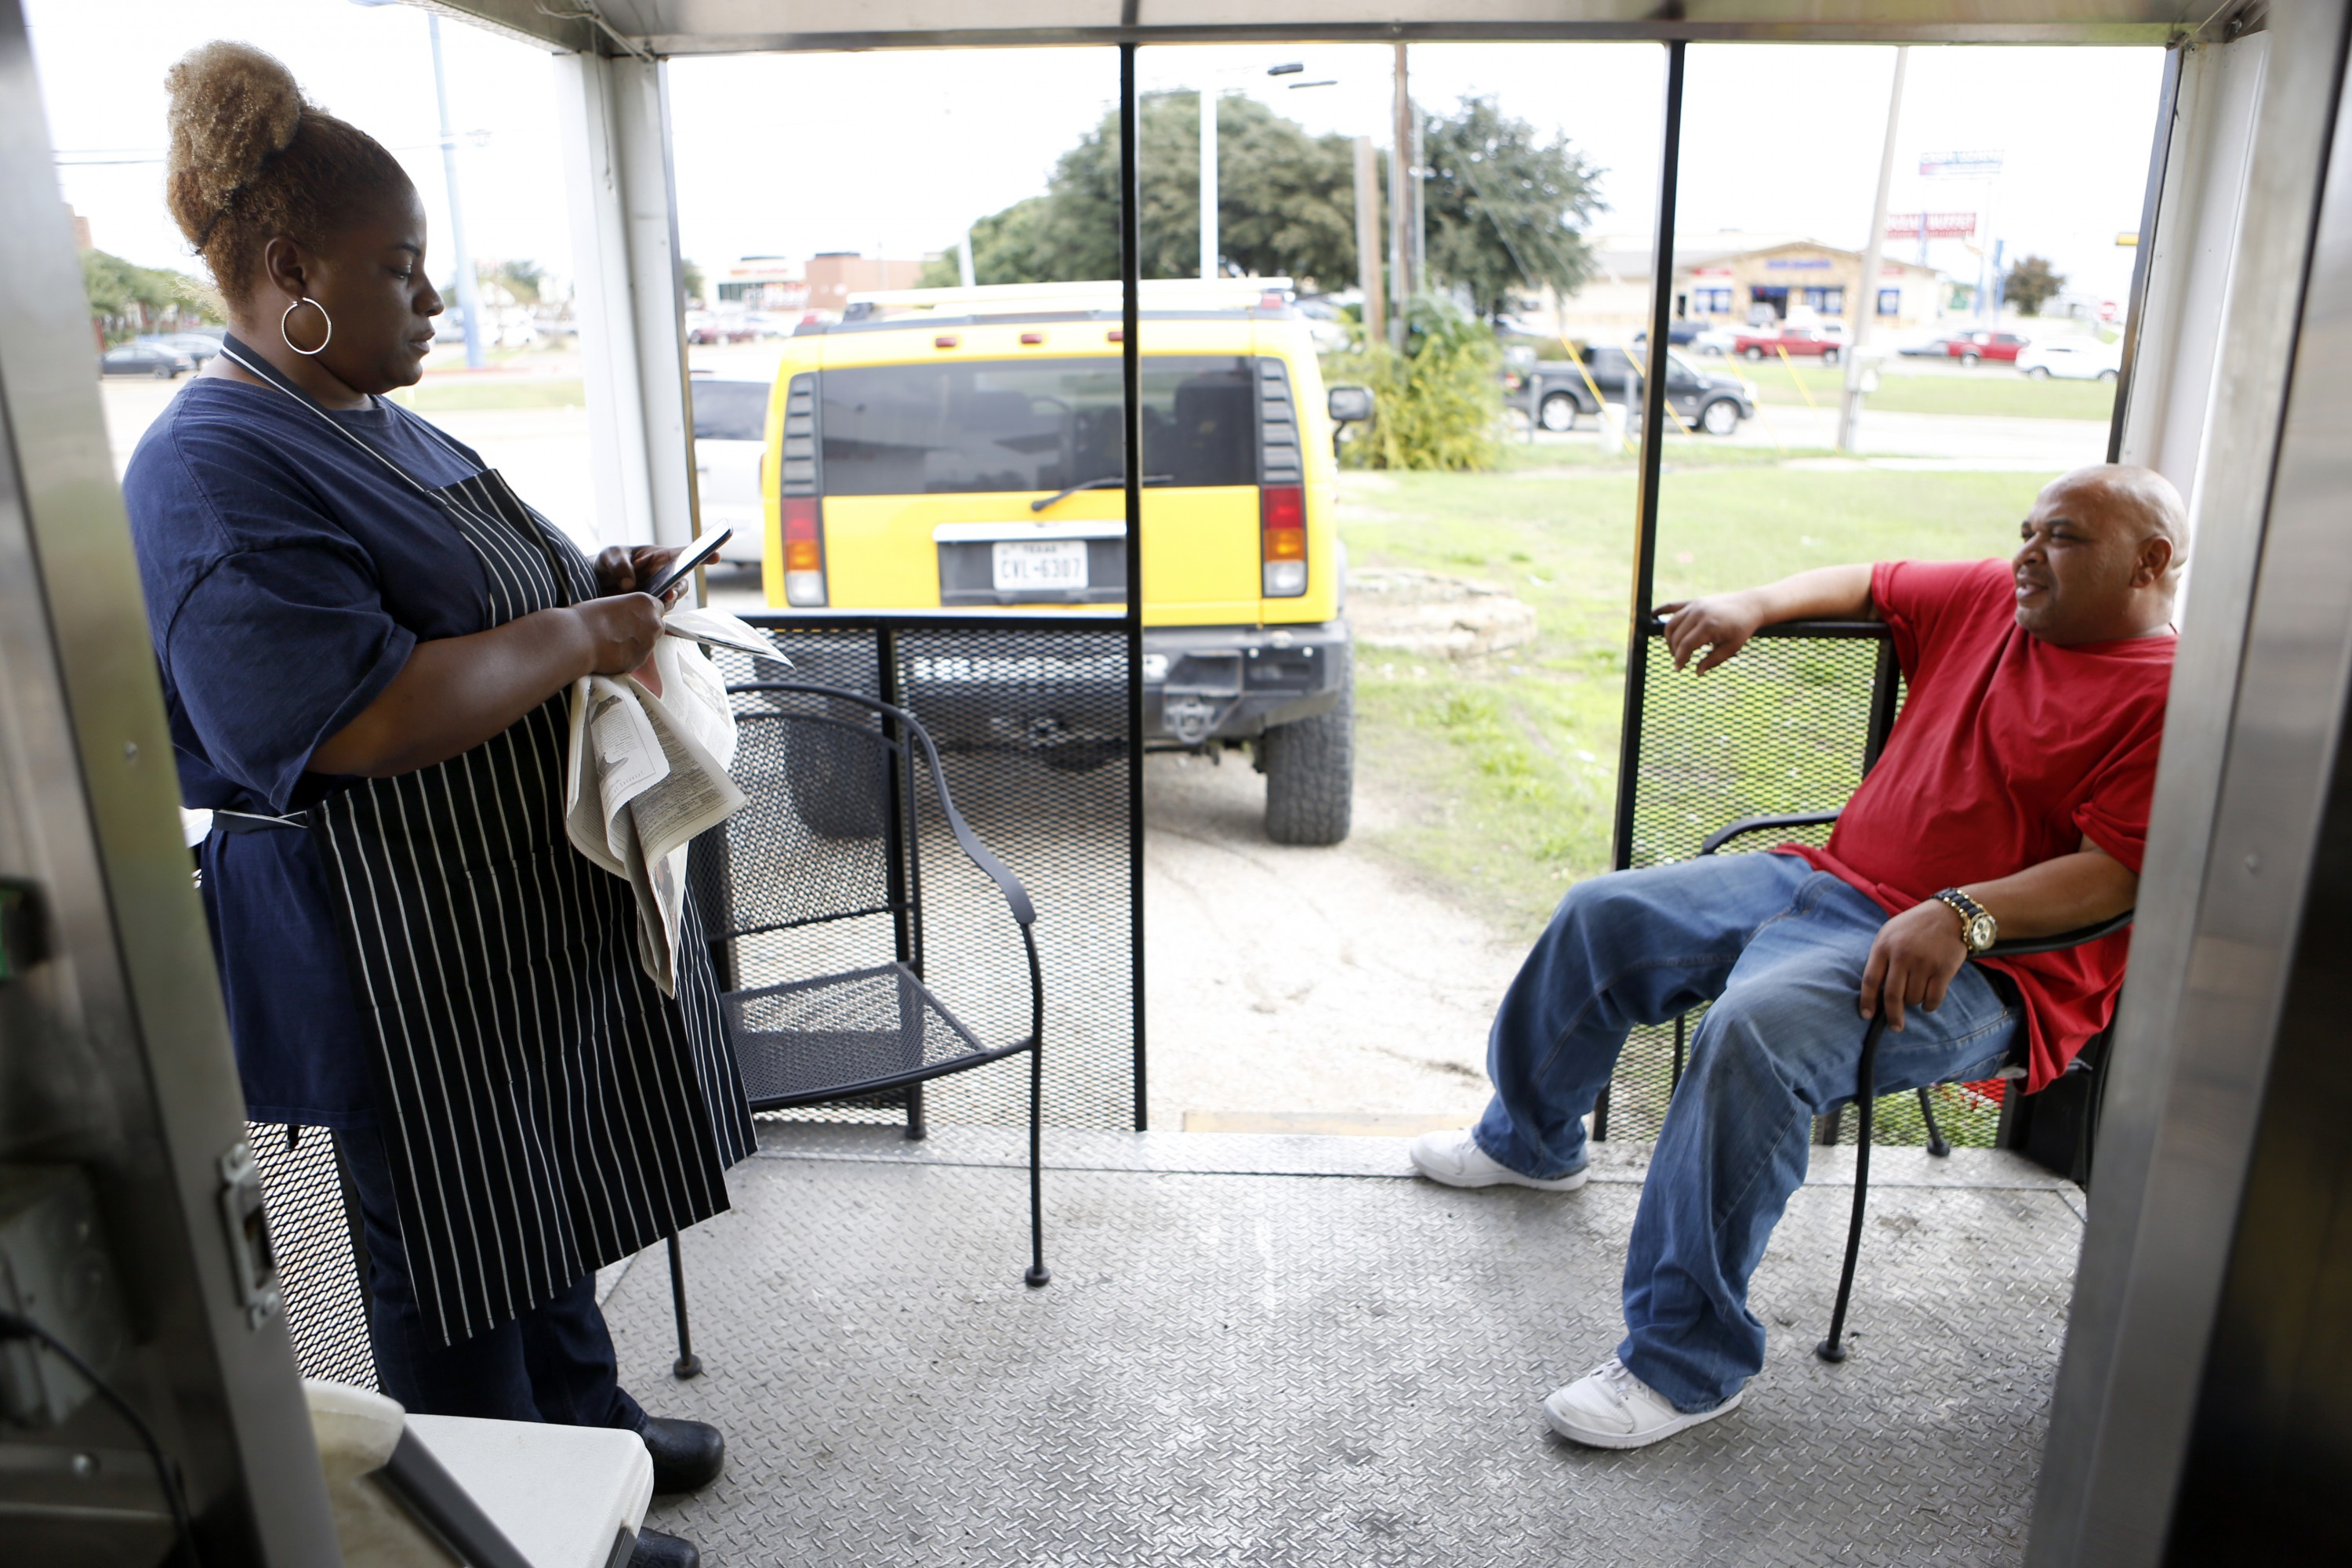 Quincy and Sheri Brown at their food truck, Ain't No Mo! Butter Cakes, on their third day operating from a Shell gas station near Interstate 635 and Ferguson Road in Garland. Photo/Lara Solt